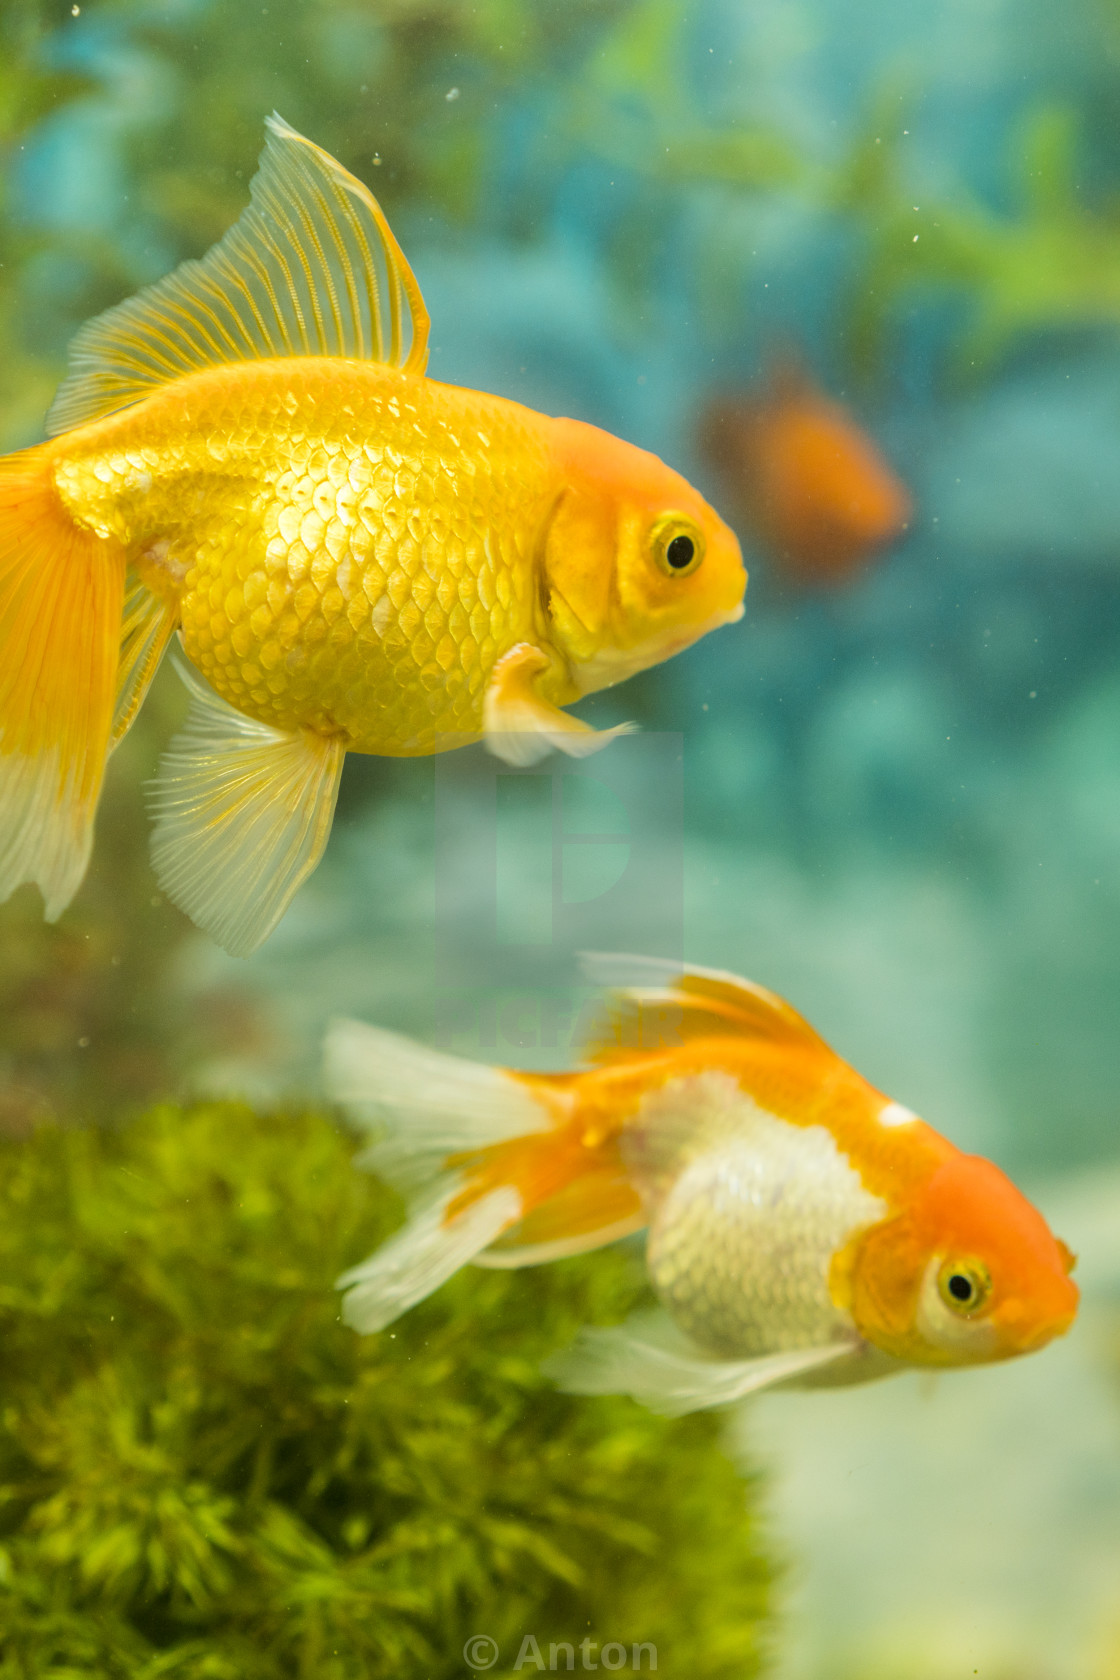 Goldfish In Freshwater Aquarium With Green Beautiful Planted Tropical Fish License Download Or Print For 1 24 Photos Picfair